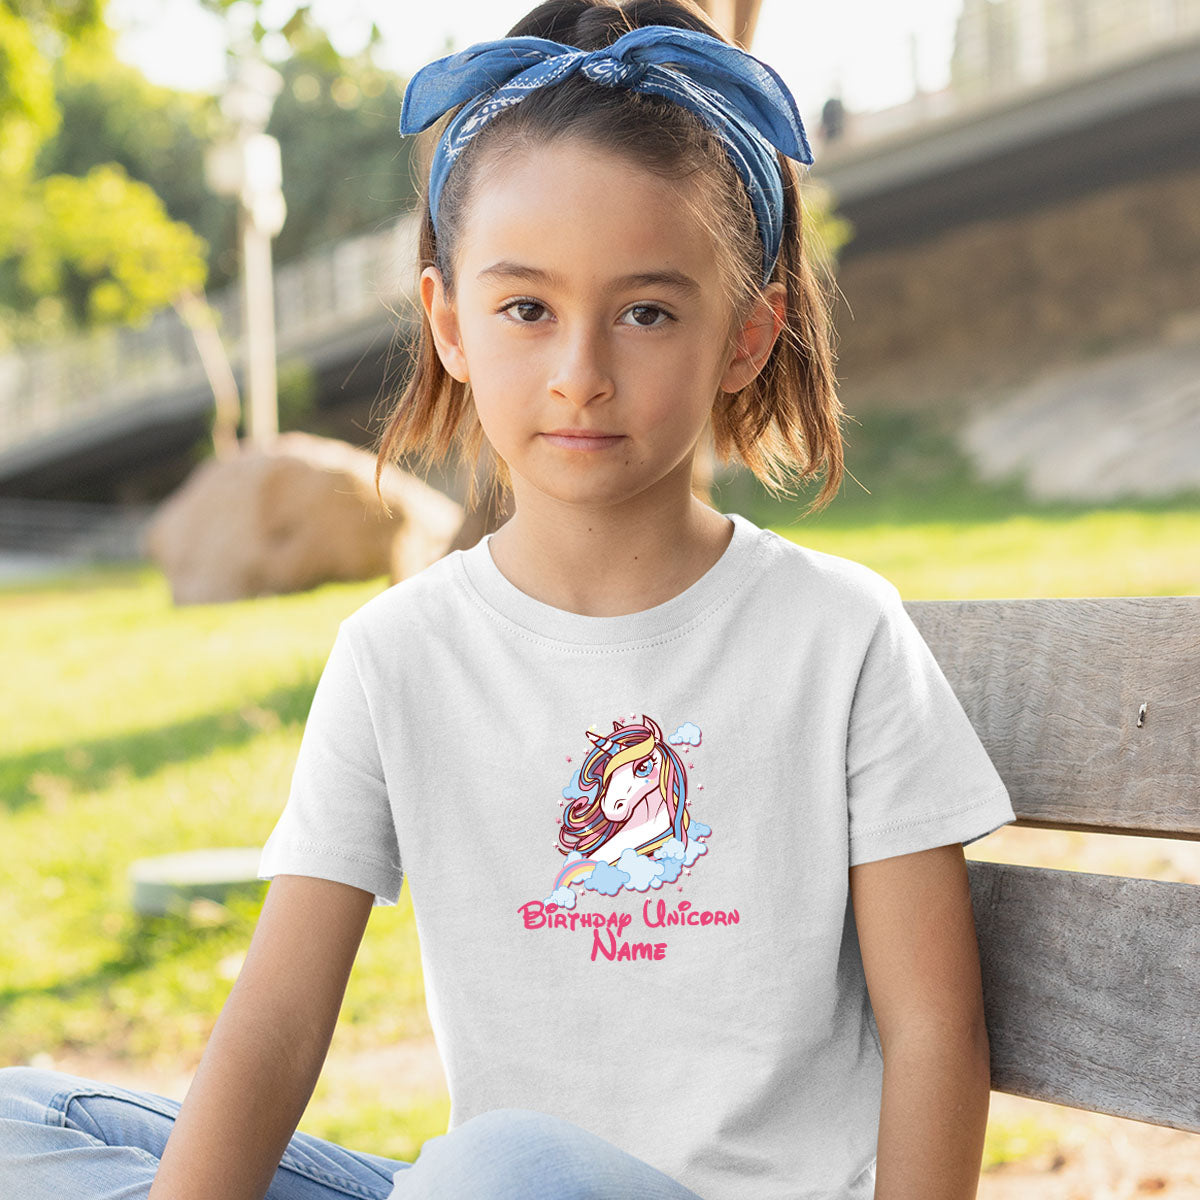 Sprinklecart Unicorn Name Printed Special Design Birthday Tee | Personalized Birthday Dress for Your Star